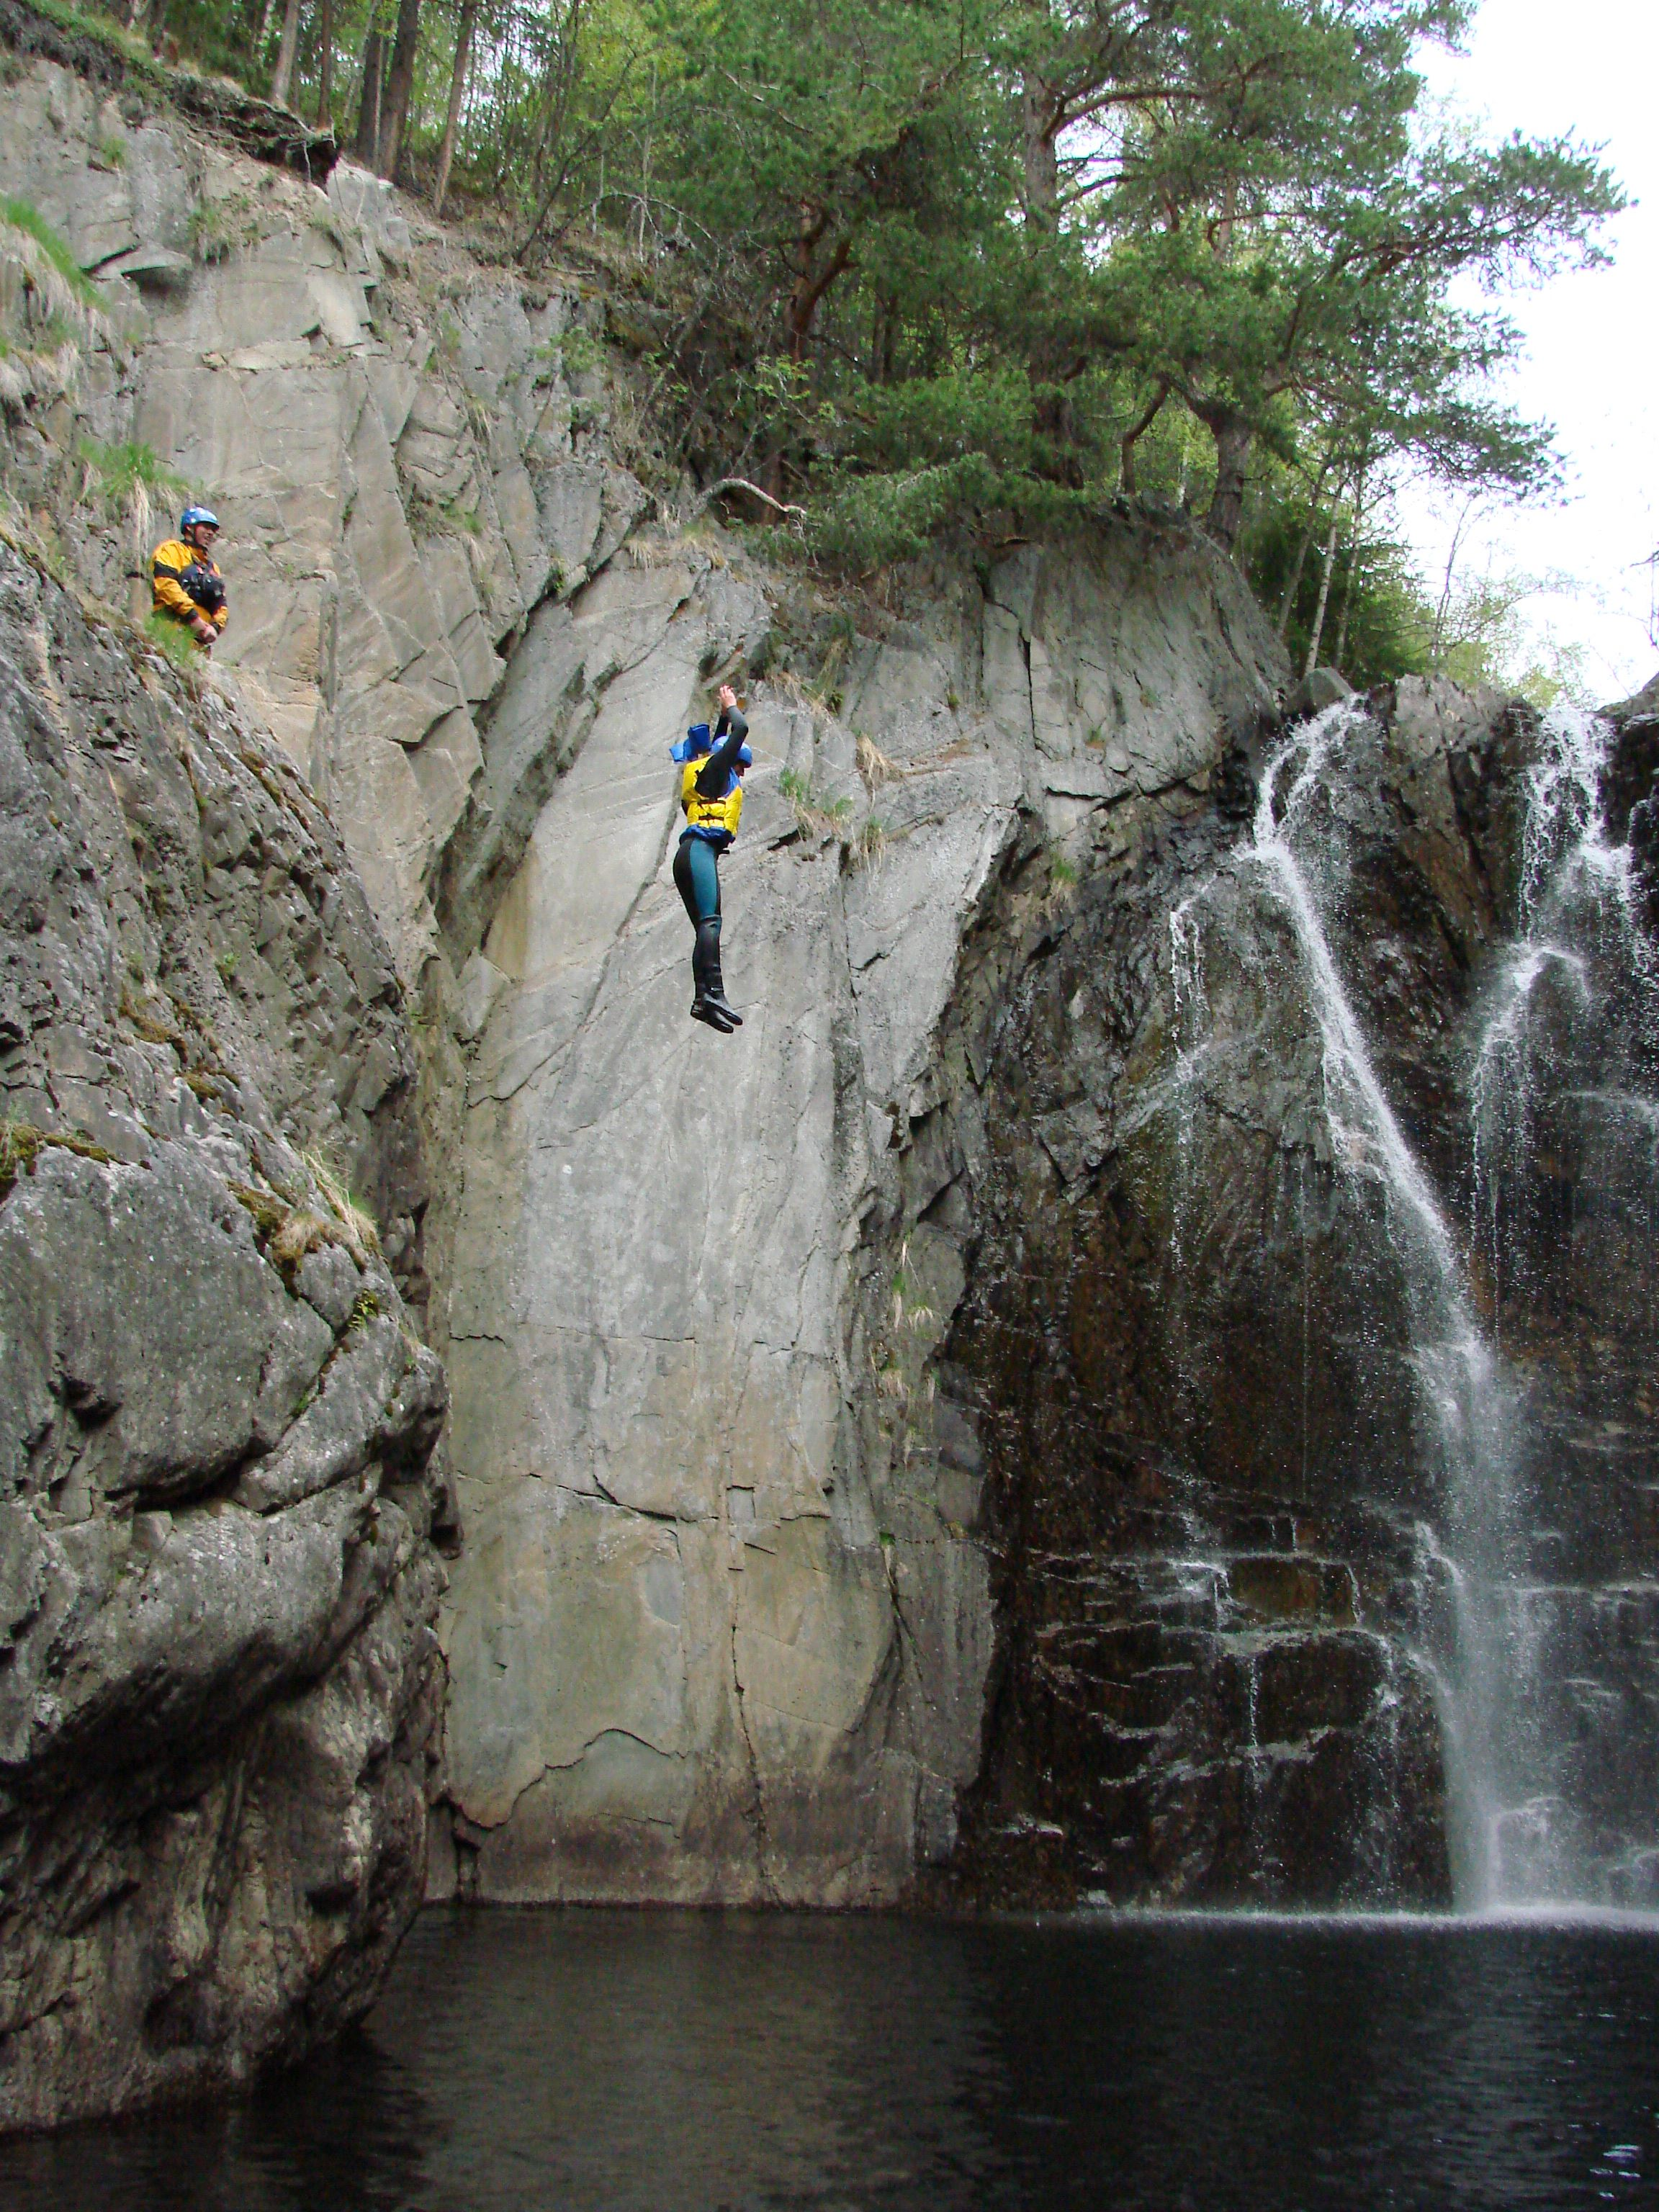 g. Juving (Canyoning)